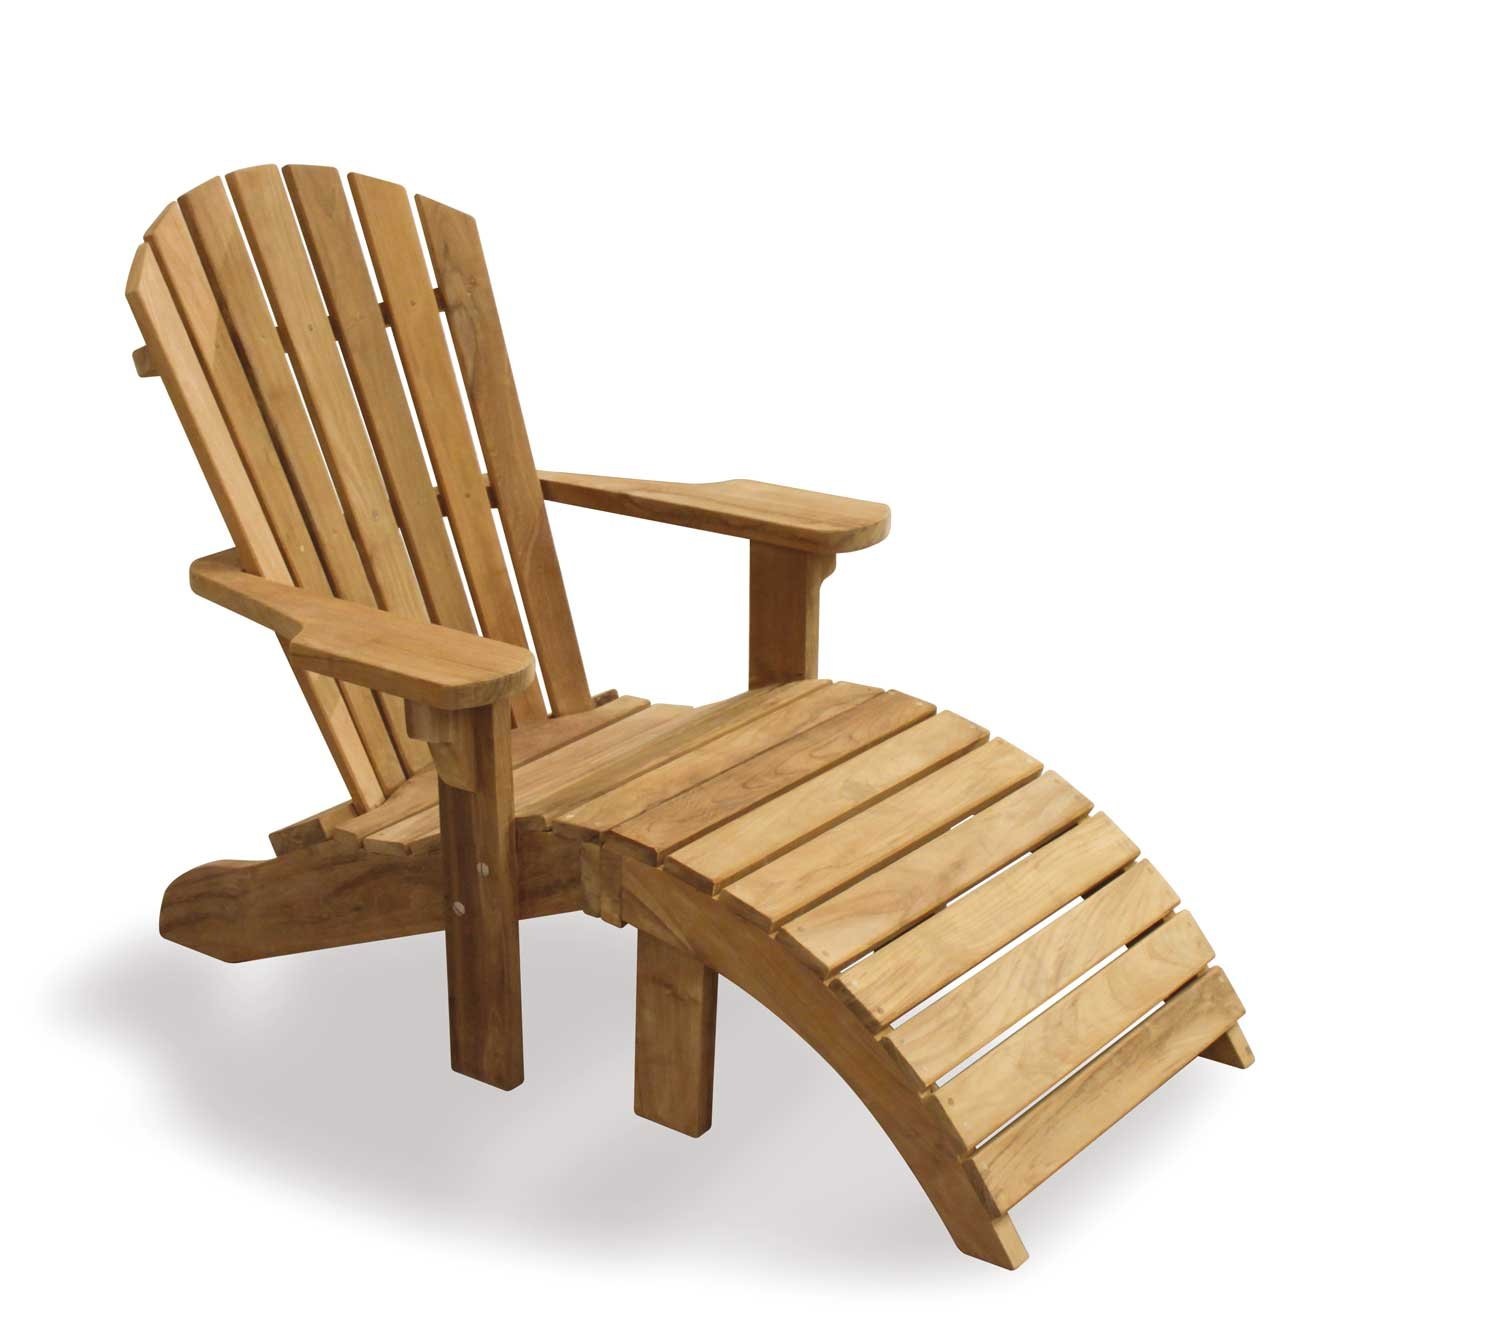 Teak Adirondack Bear Chair with Footstool Sturdy and Sustainable